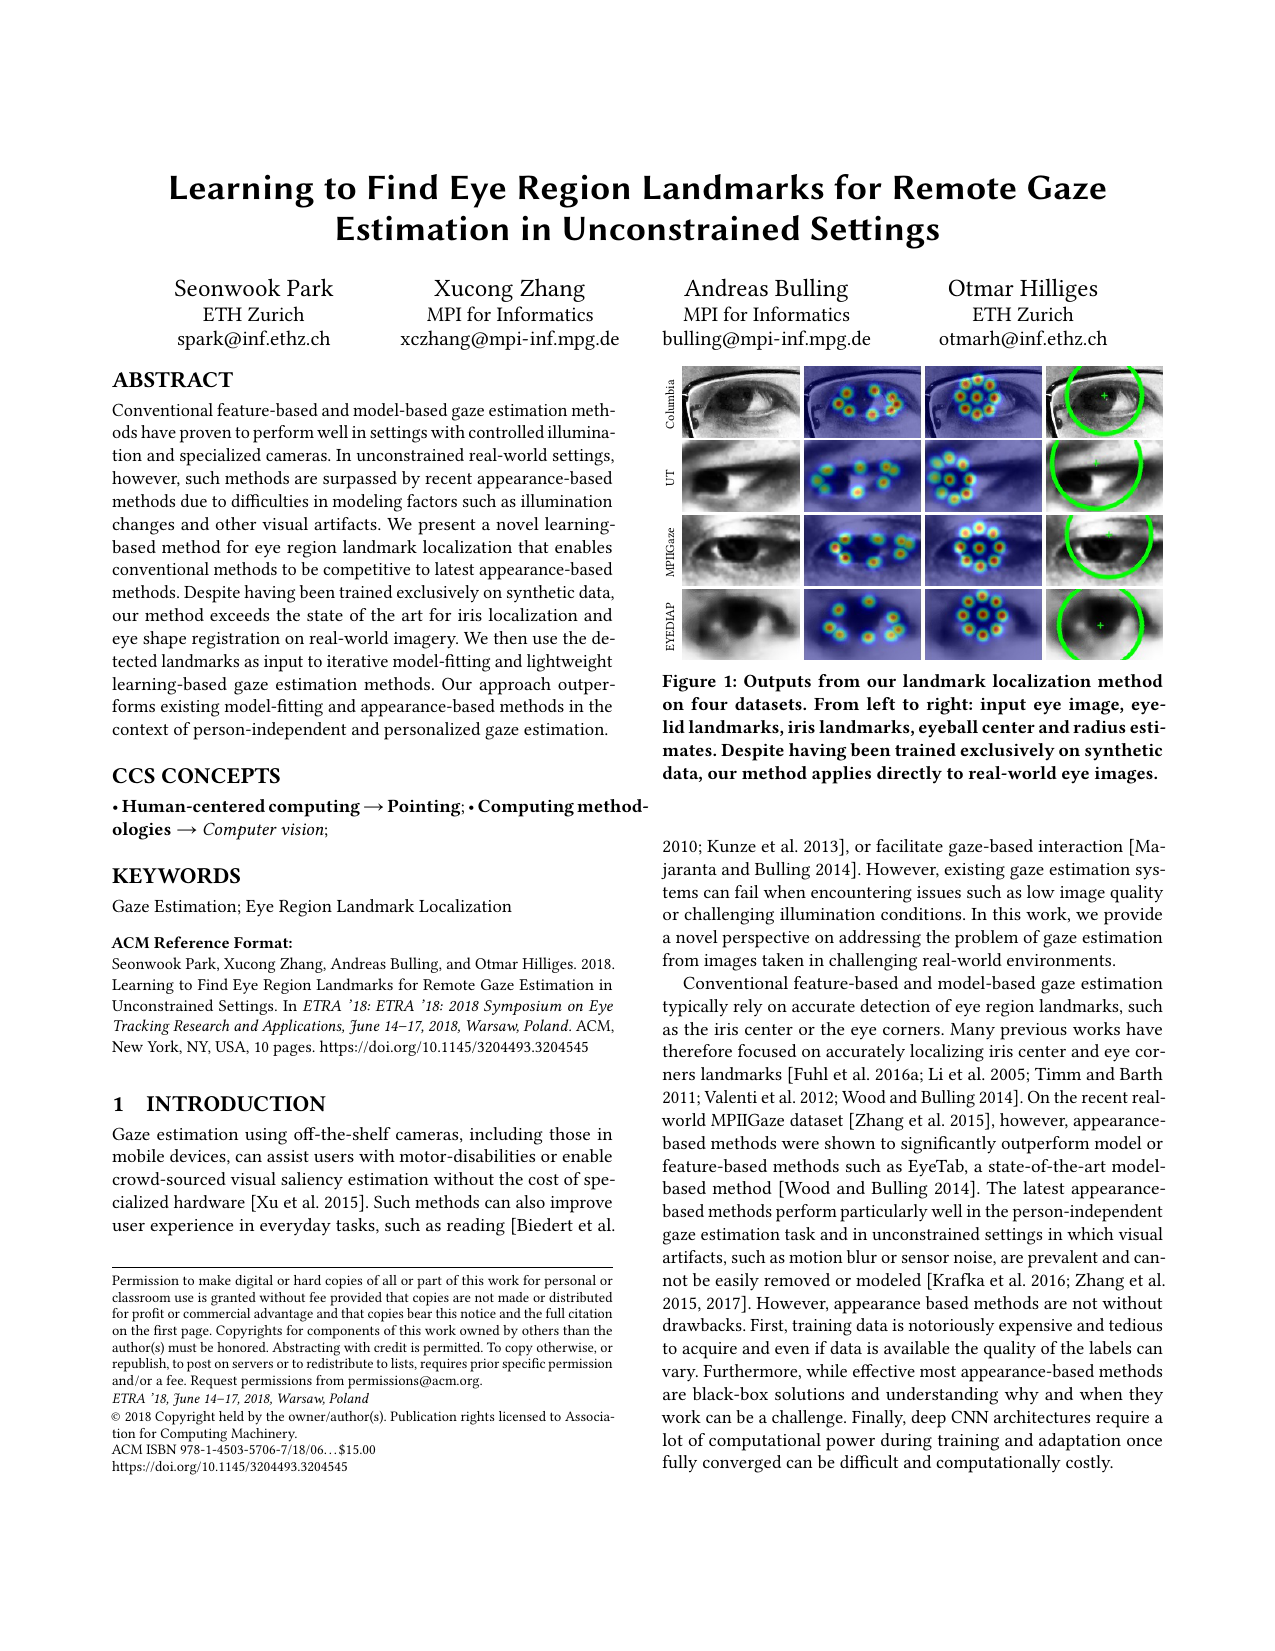 Learning to Find Eye Region Landmarks for Remote Gaze Estimation in Unconstrained Settings